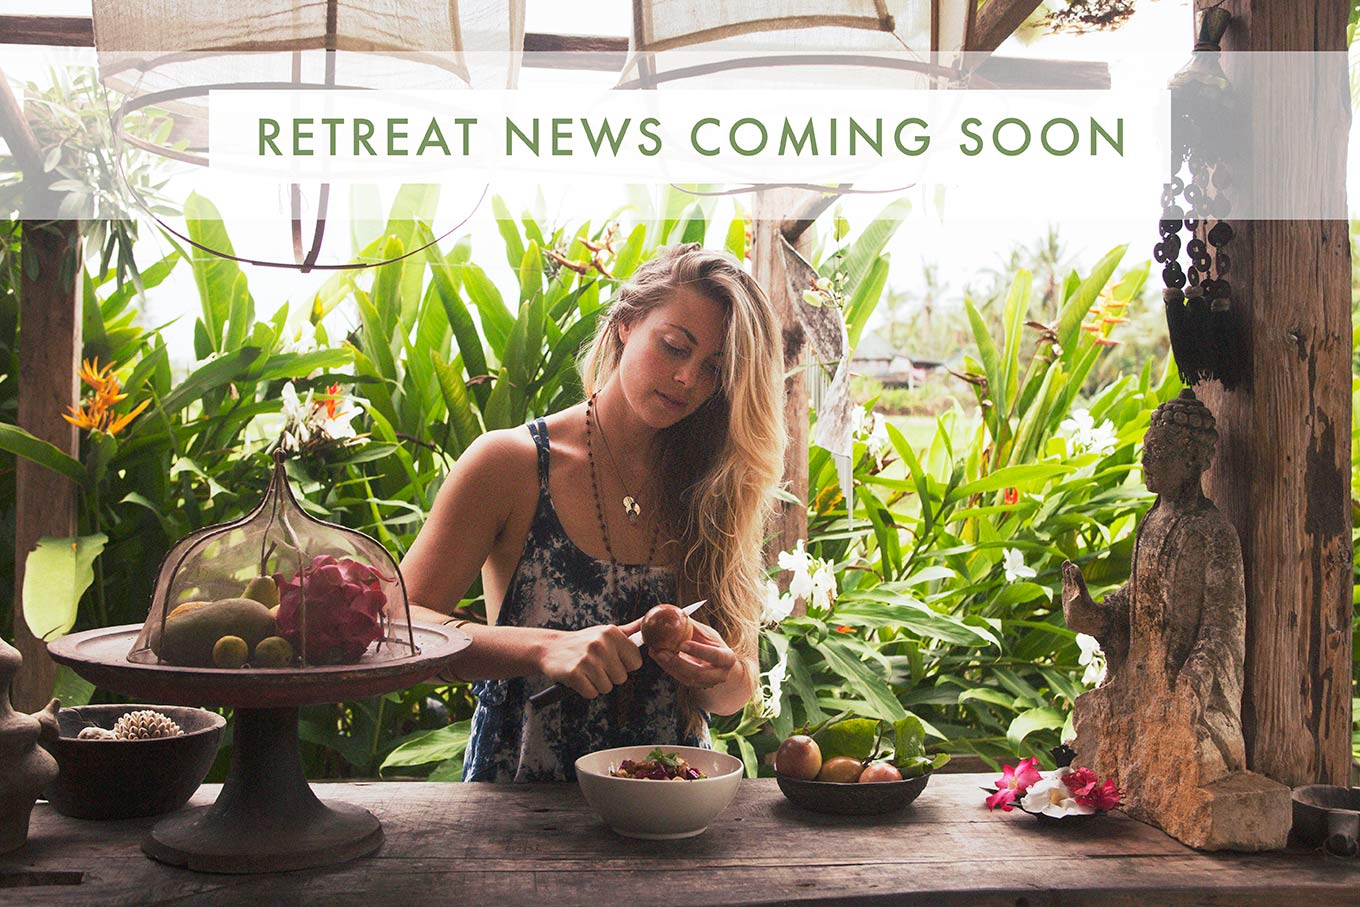 retreatannoucement